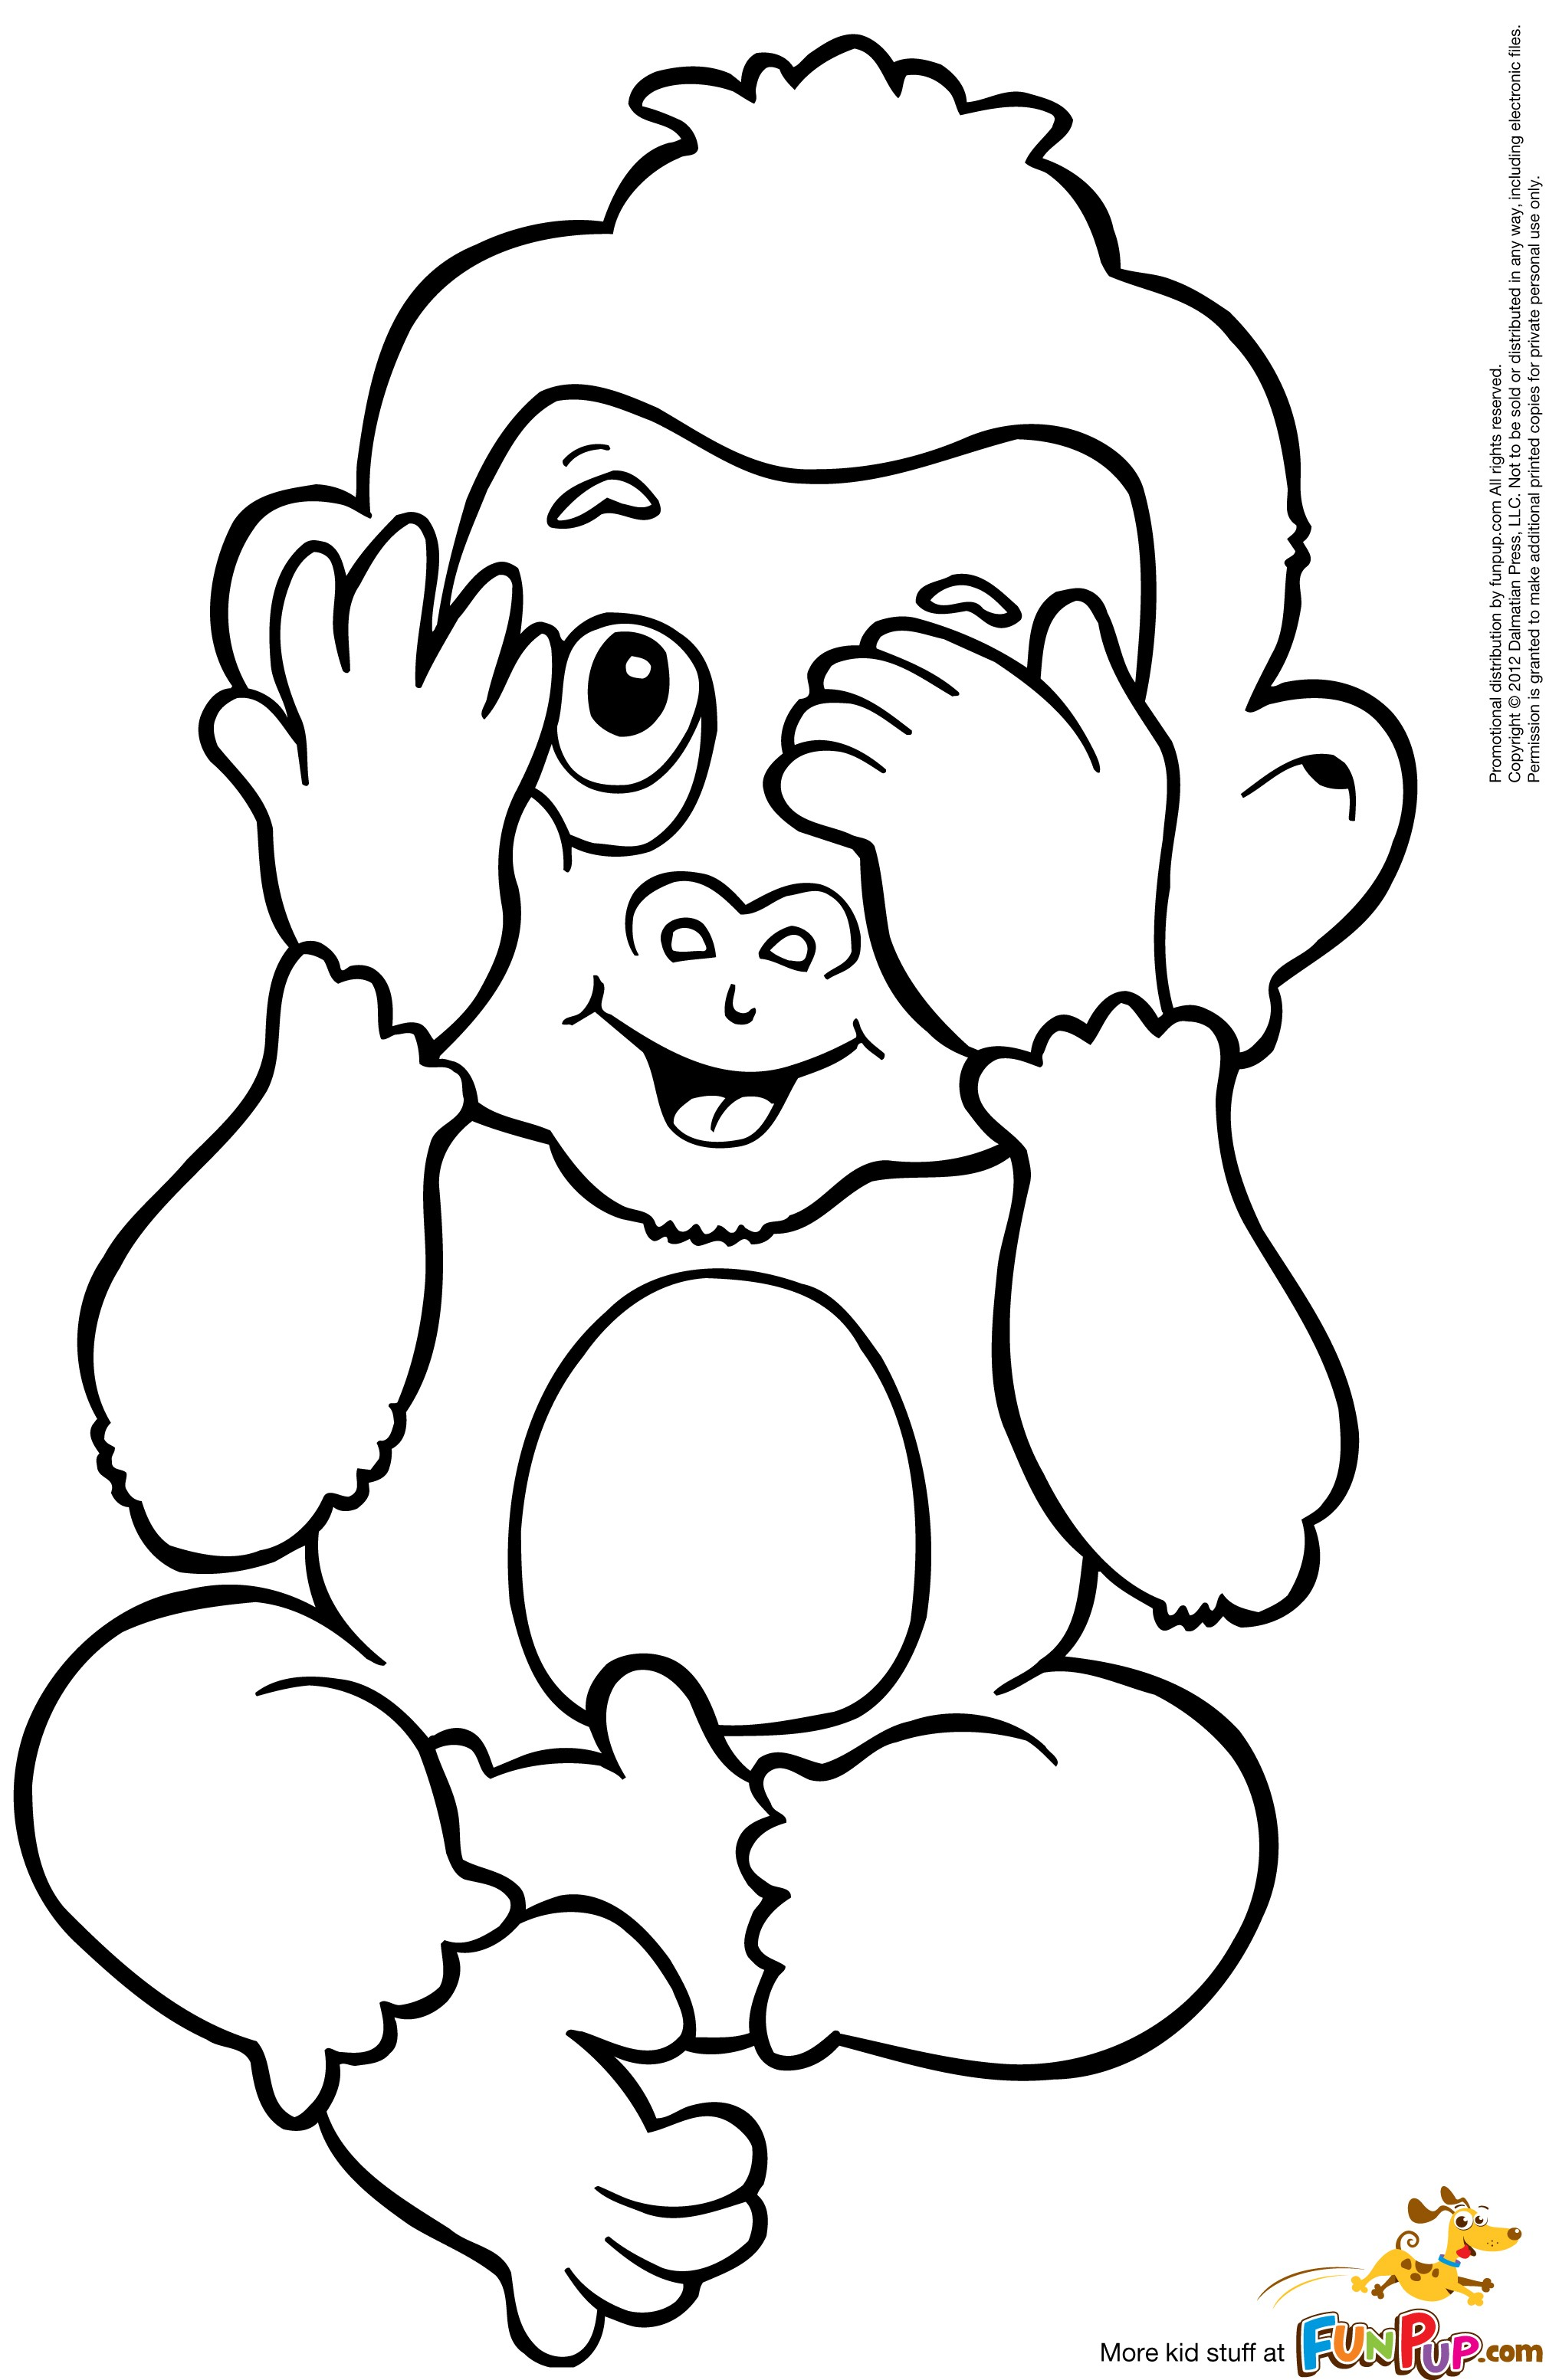 2034x3106 Charming Idea Baby Monkey Coloring Pages Printable For Kids Cute